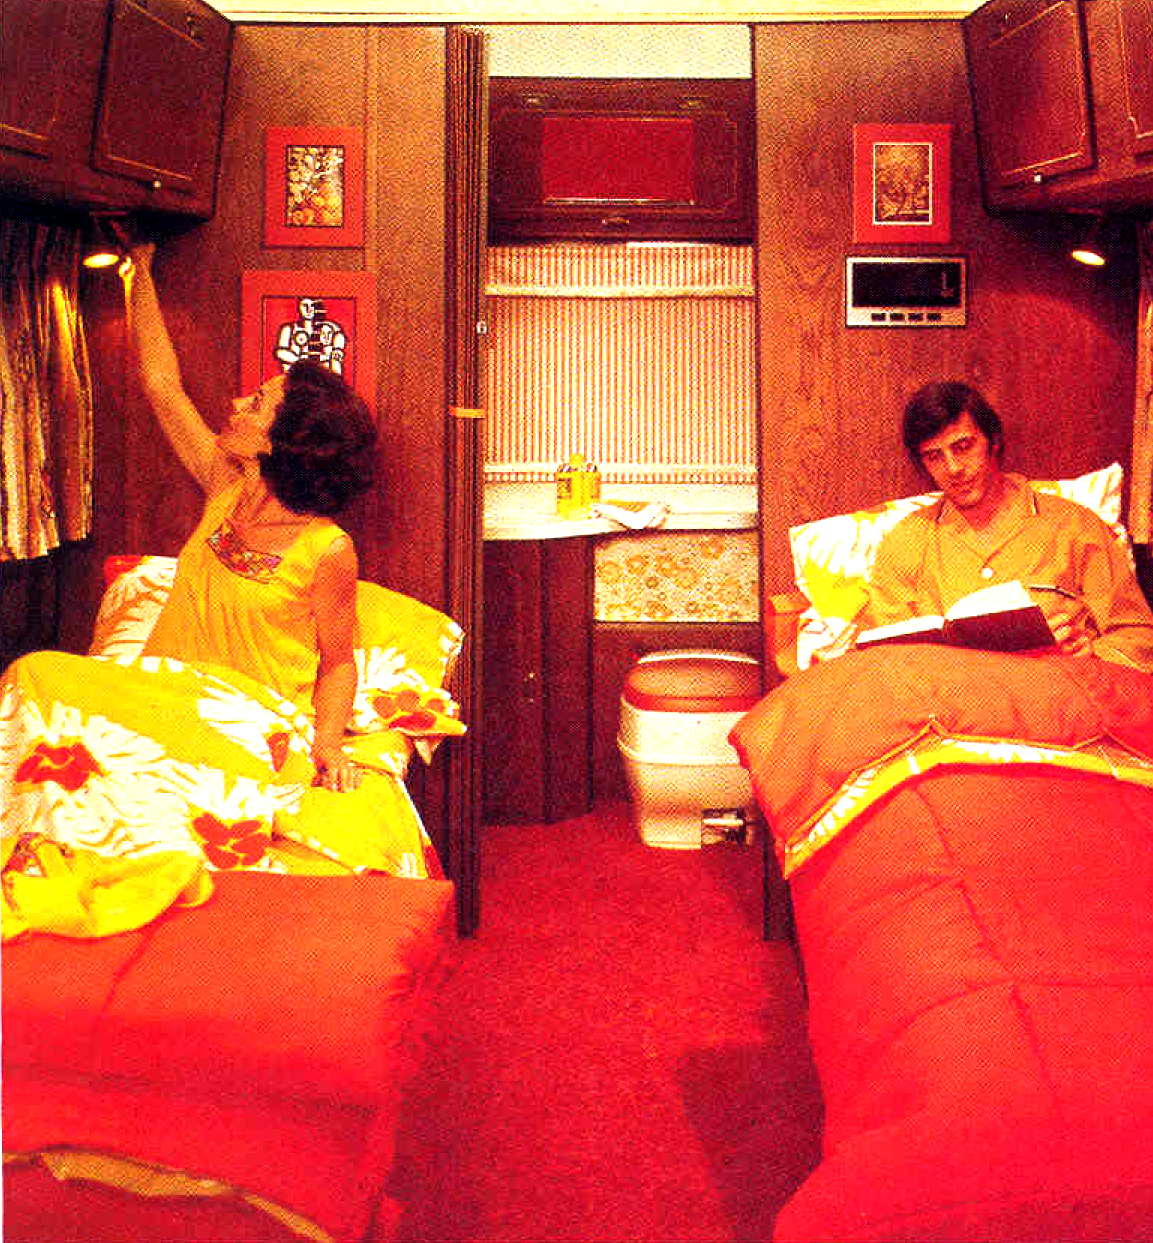 Campers Of Shag Part 2 Another Look Inside Groovy Rv S Of The 1970s Flashbak